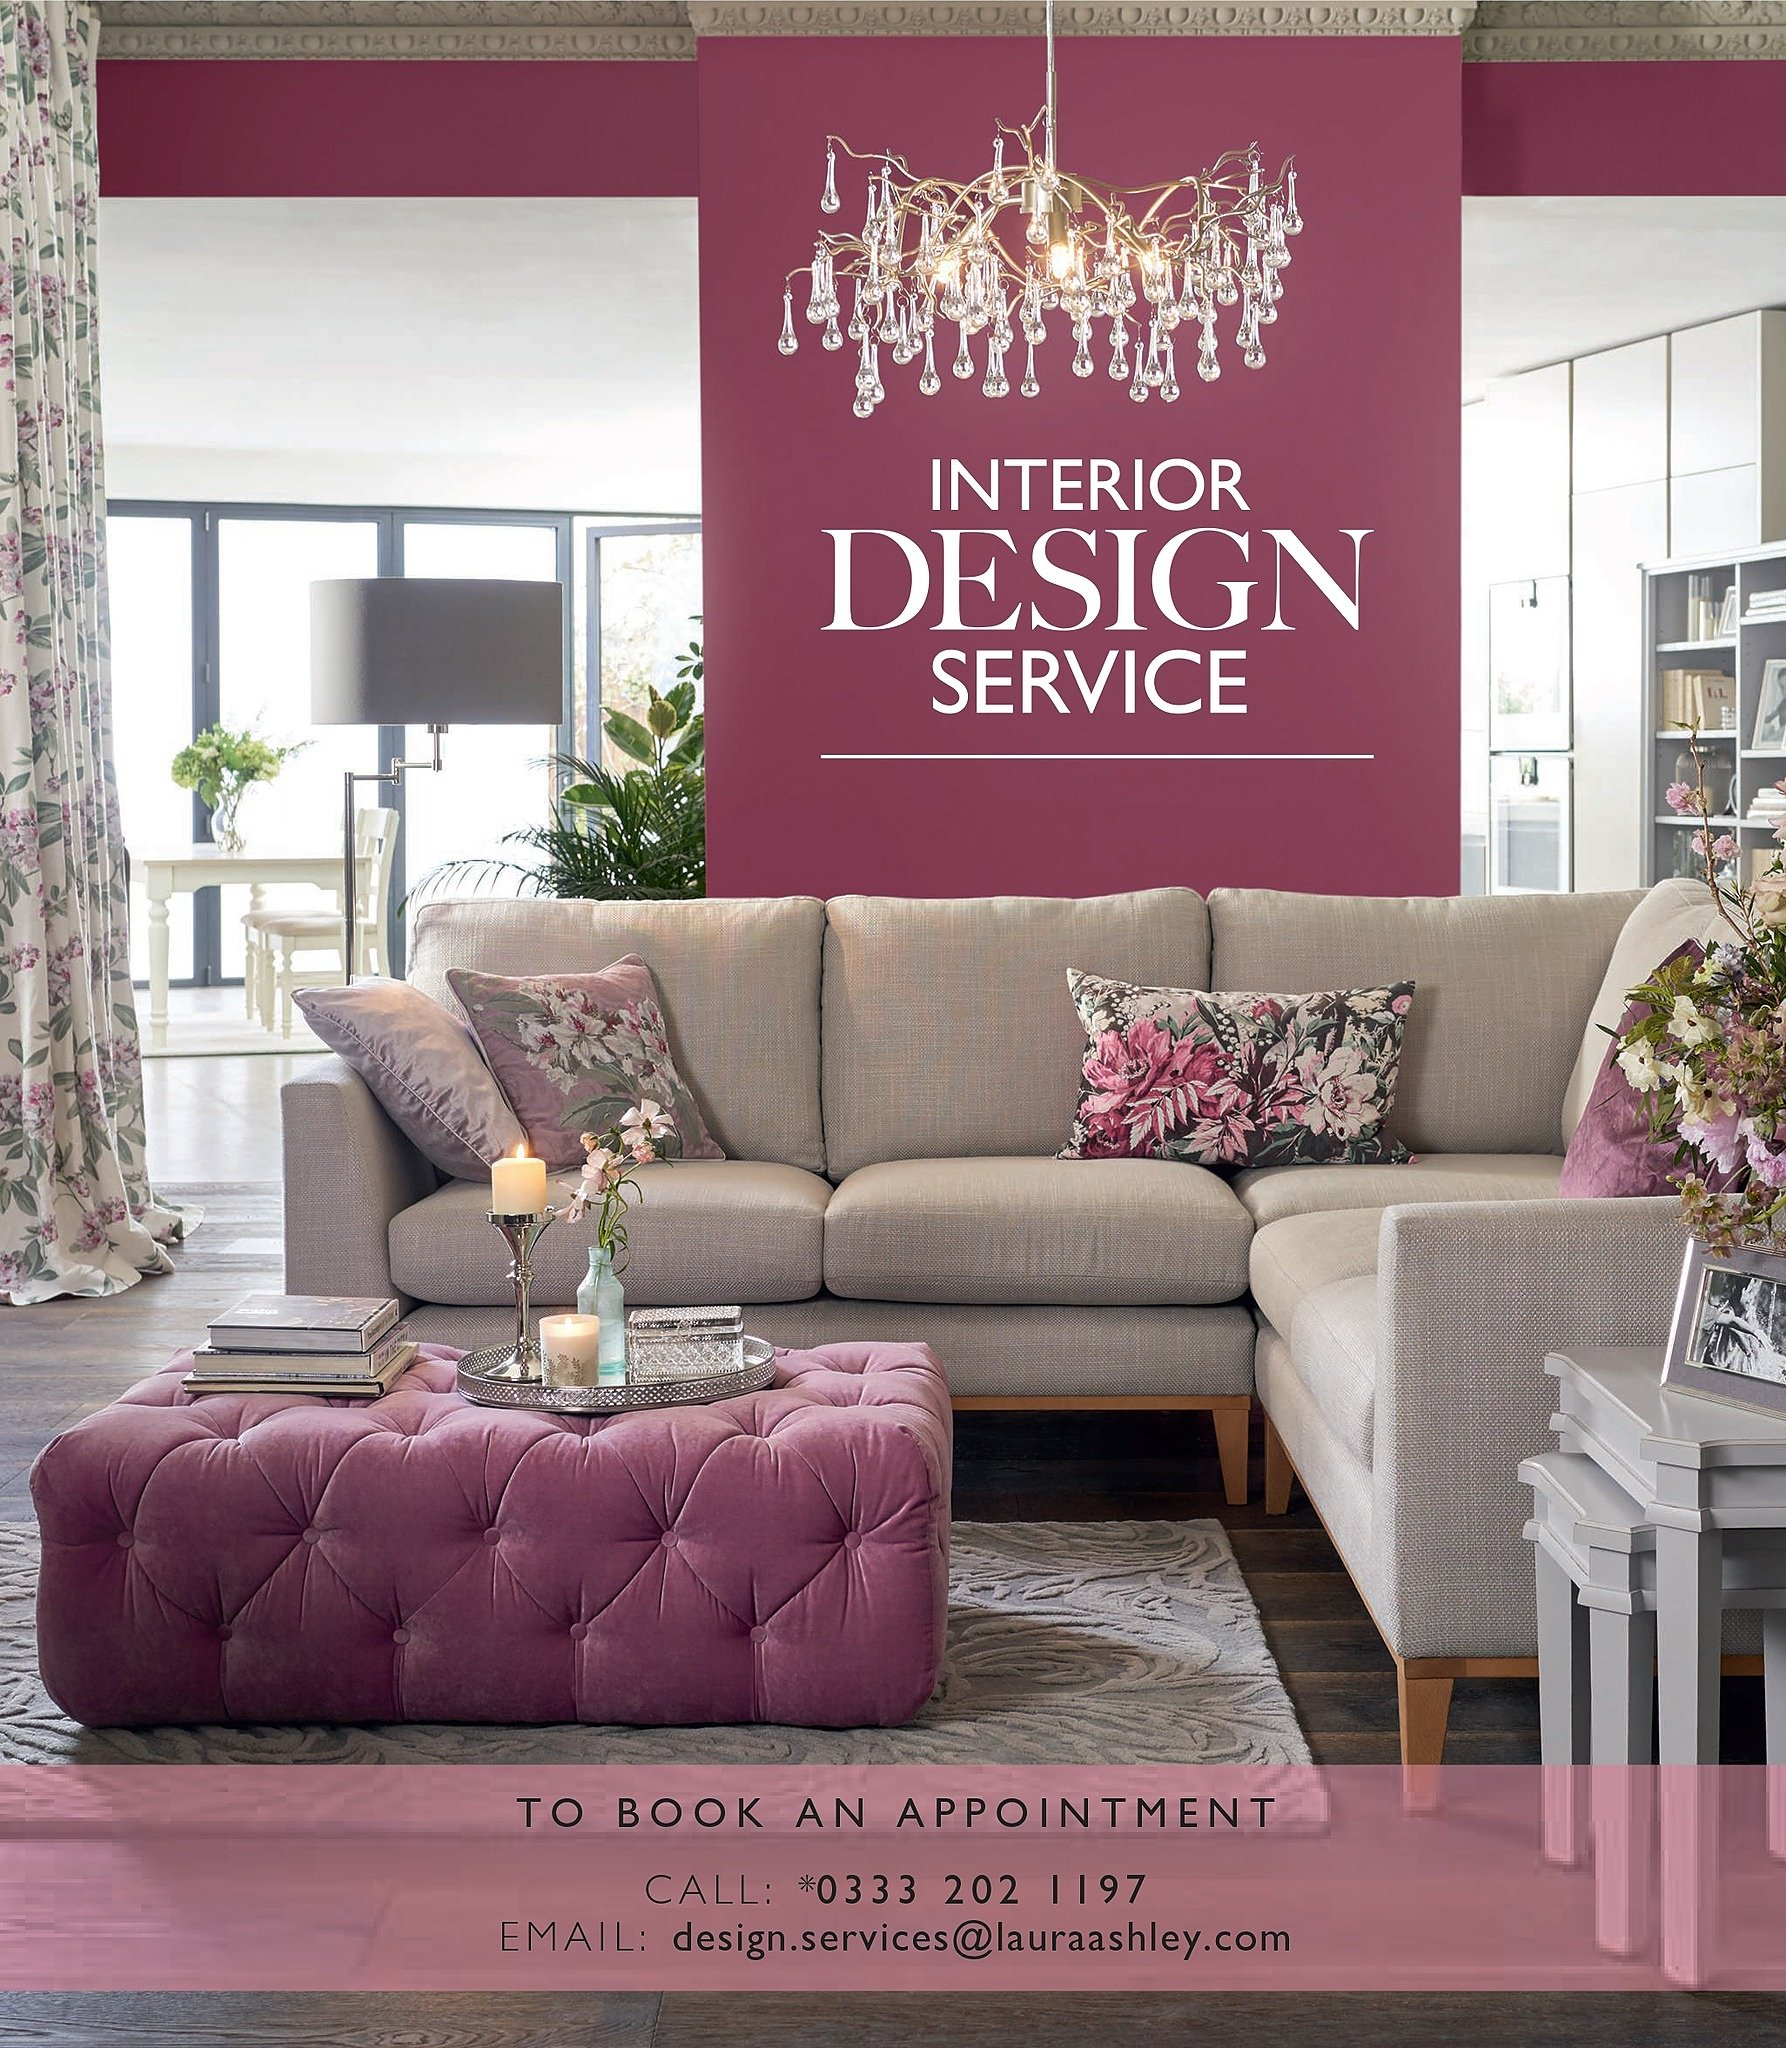 Laura Ashley On Twitter For A Limited Time Only Get A Second Room Designed For Free With The Booking Of A Design Service Consultation Book Your Appointment Today Https T Co Hfqdgkmcsg Https T Co 4kepevpp6t